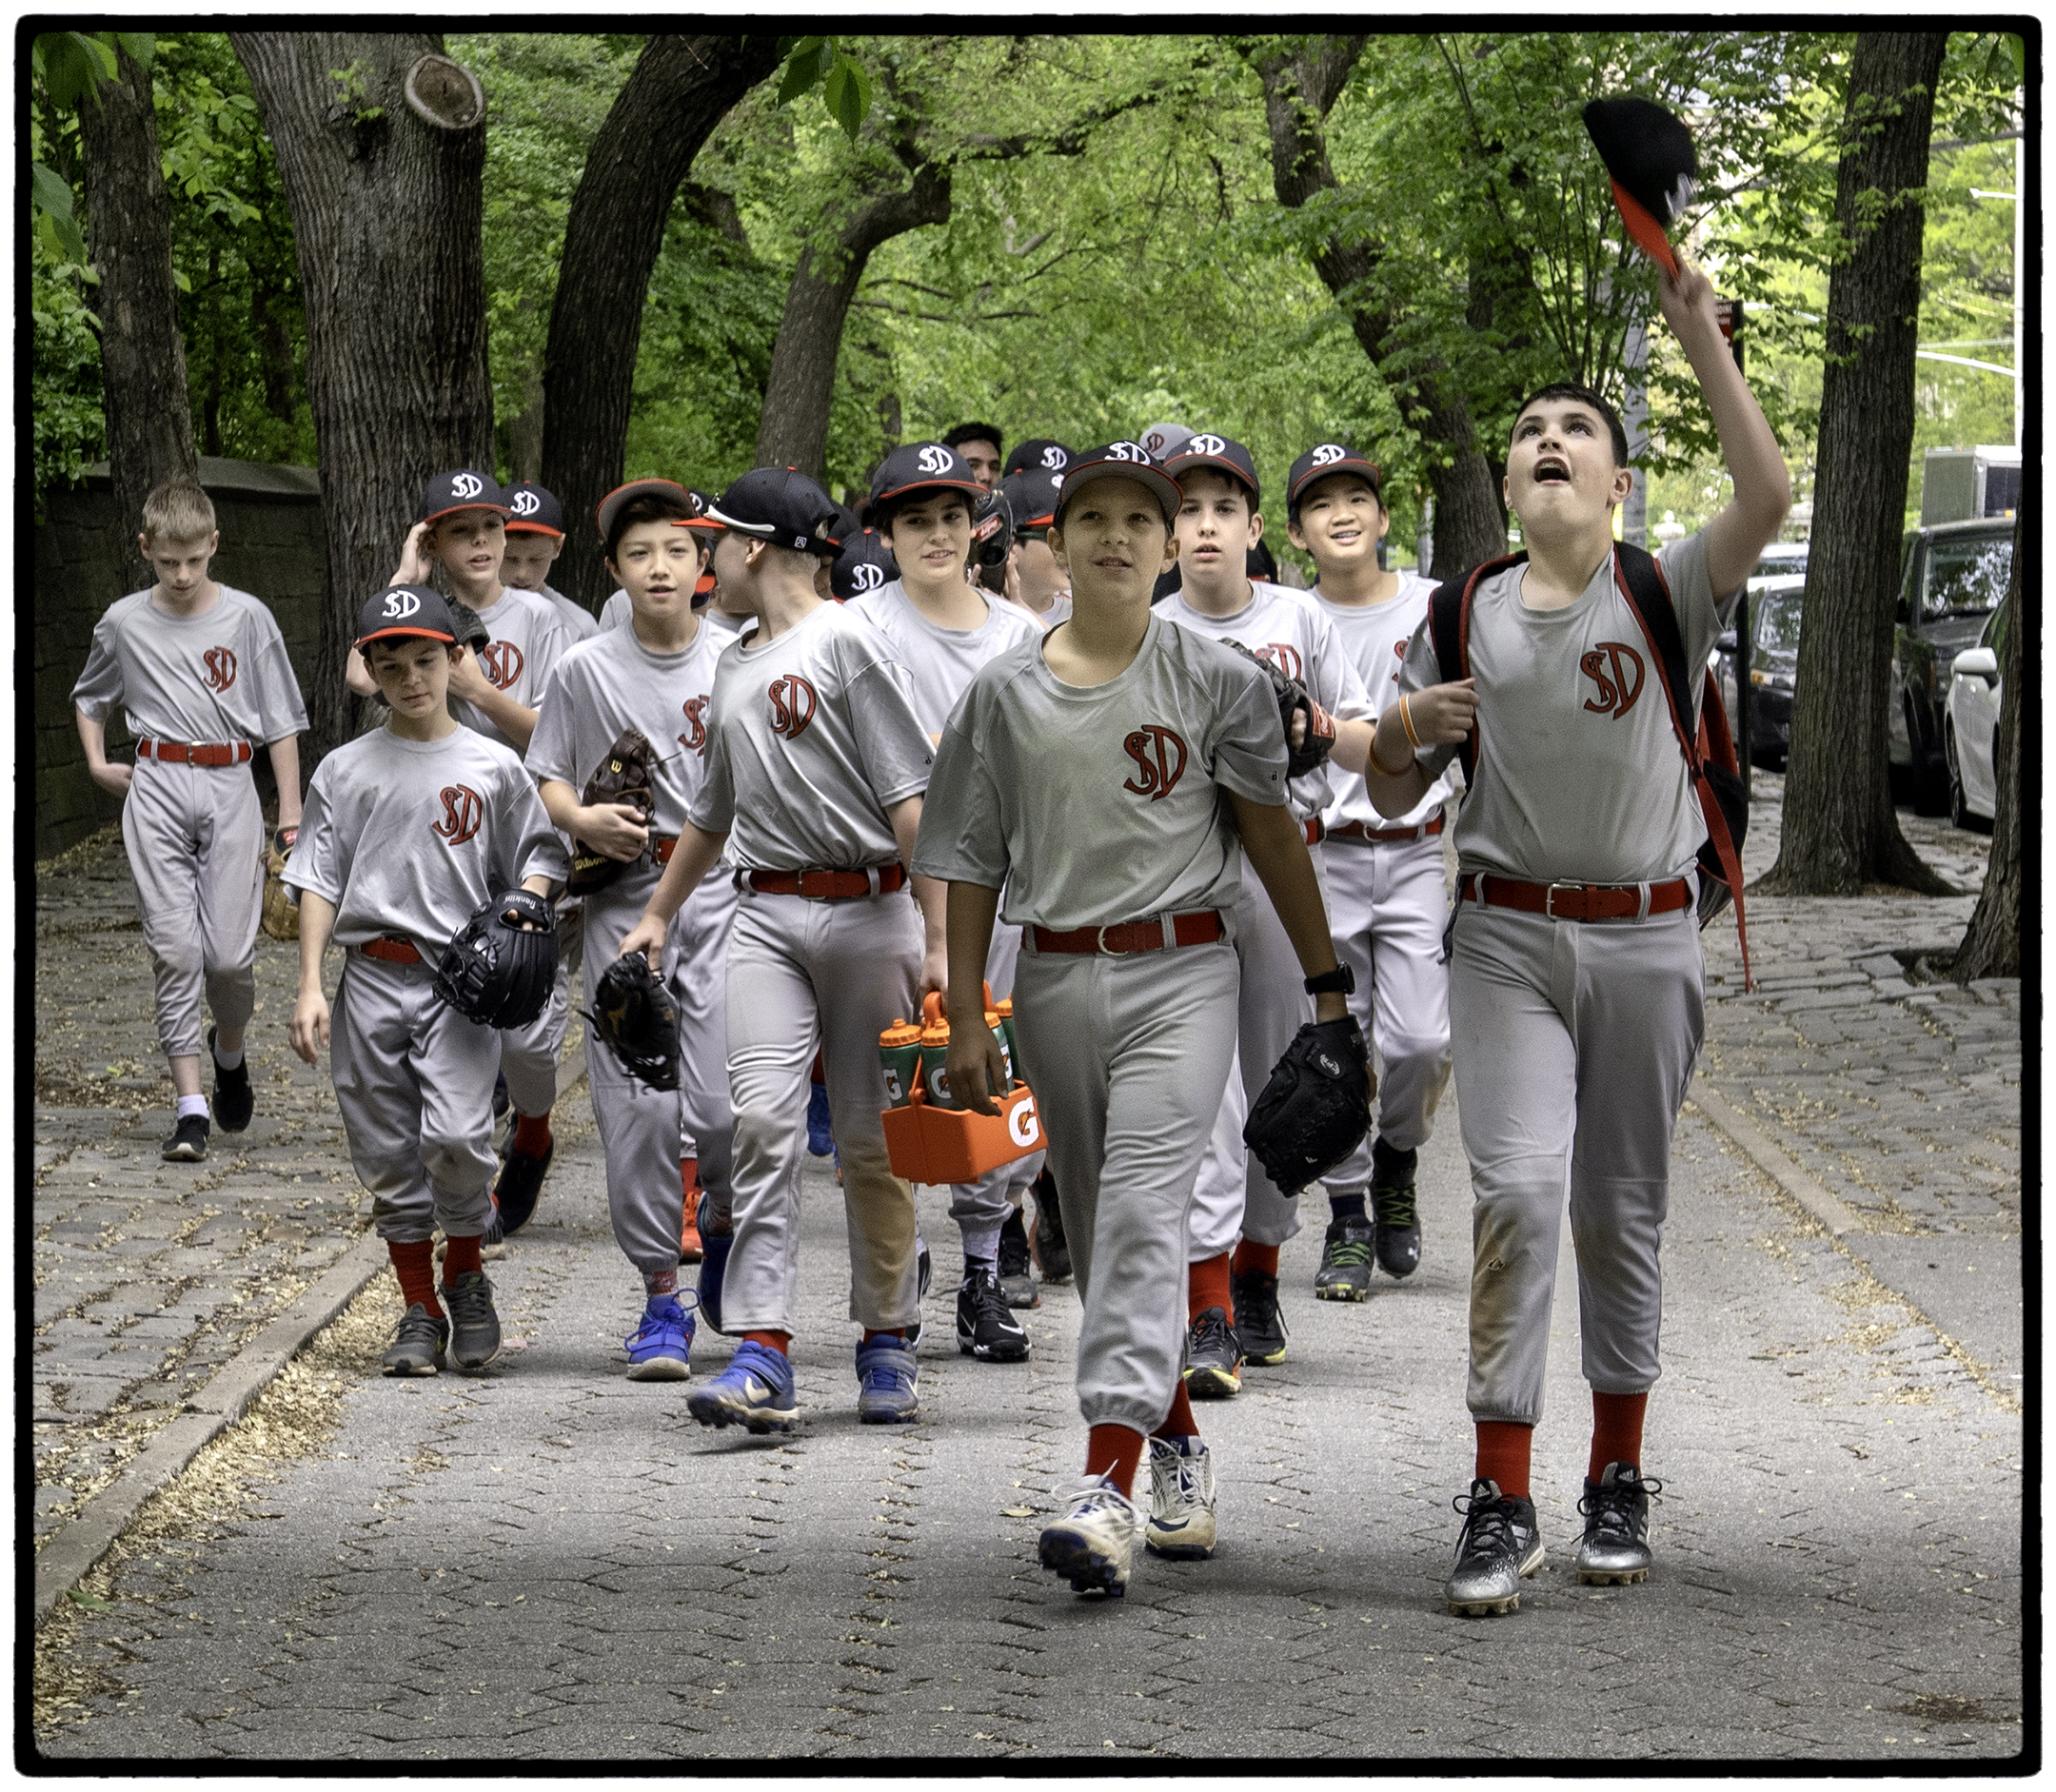 Baseball Team, Fifth Avenue